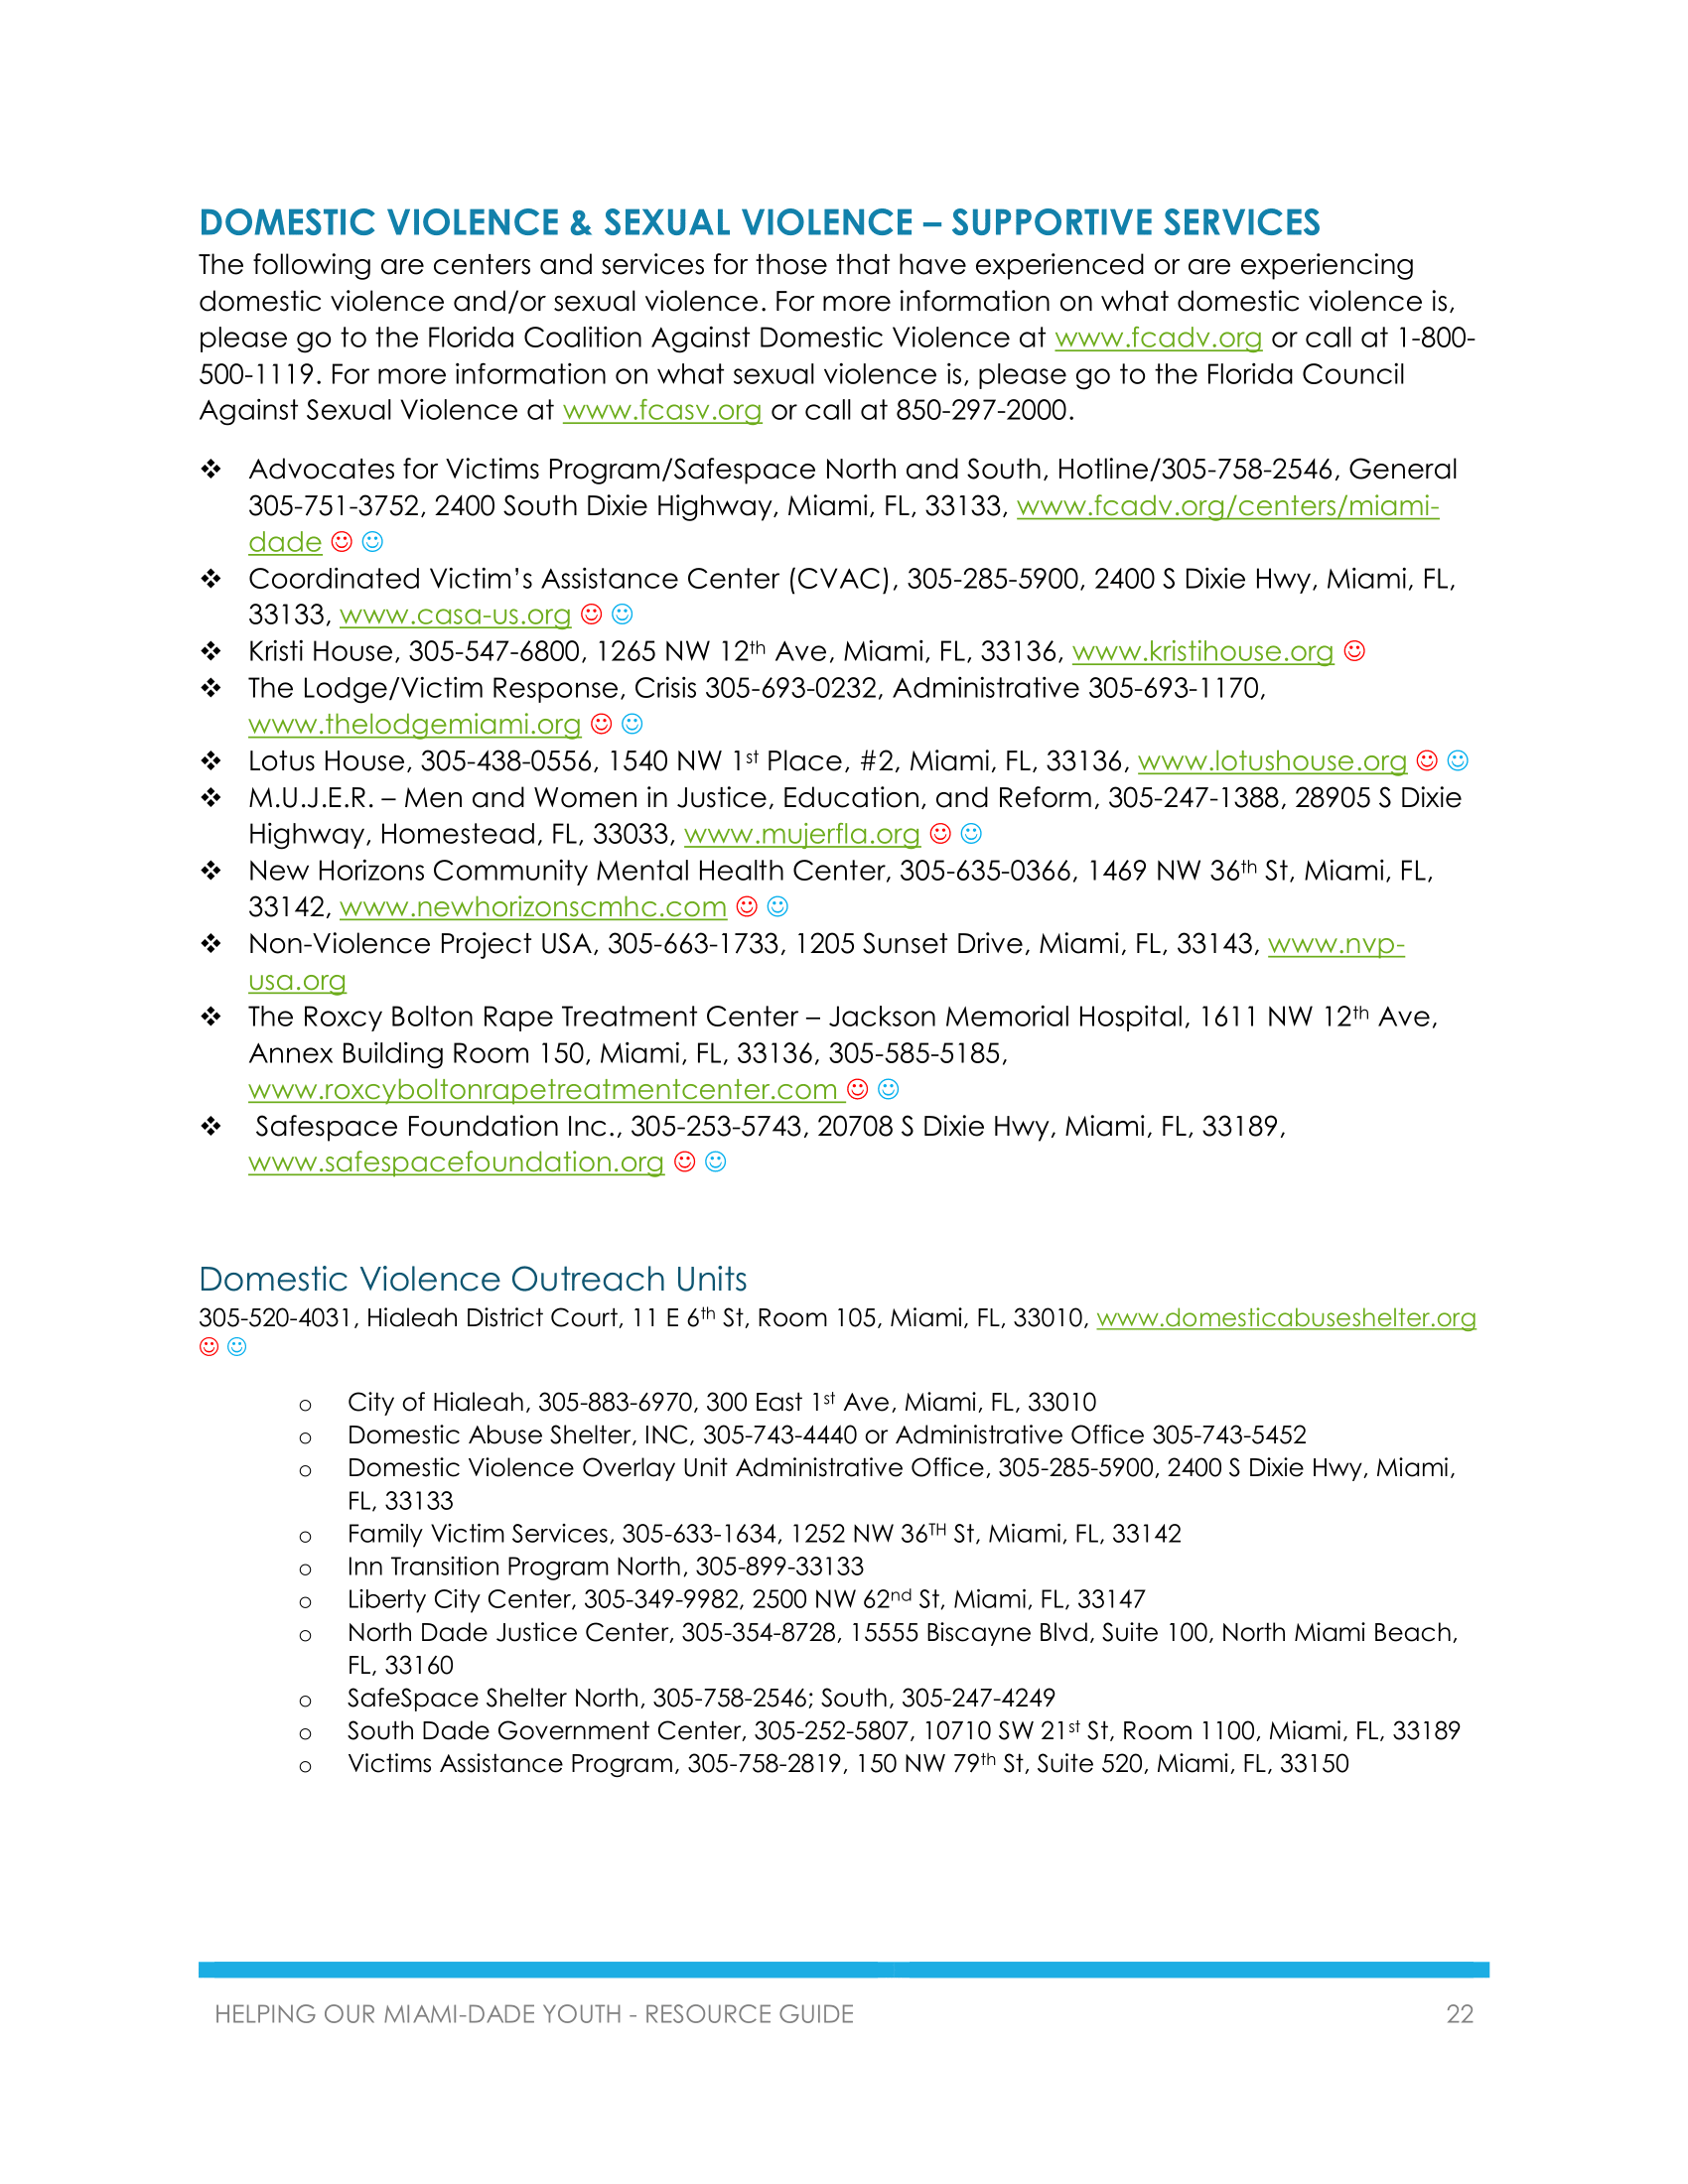 Youth Resource Guide - May 2018-27.png